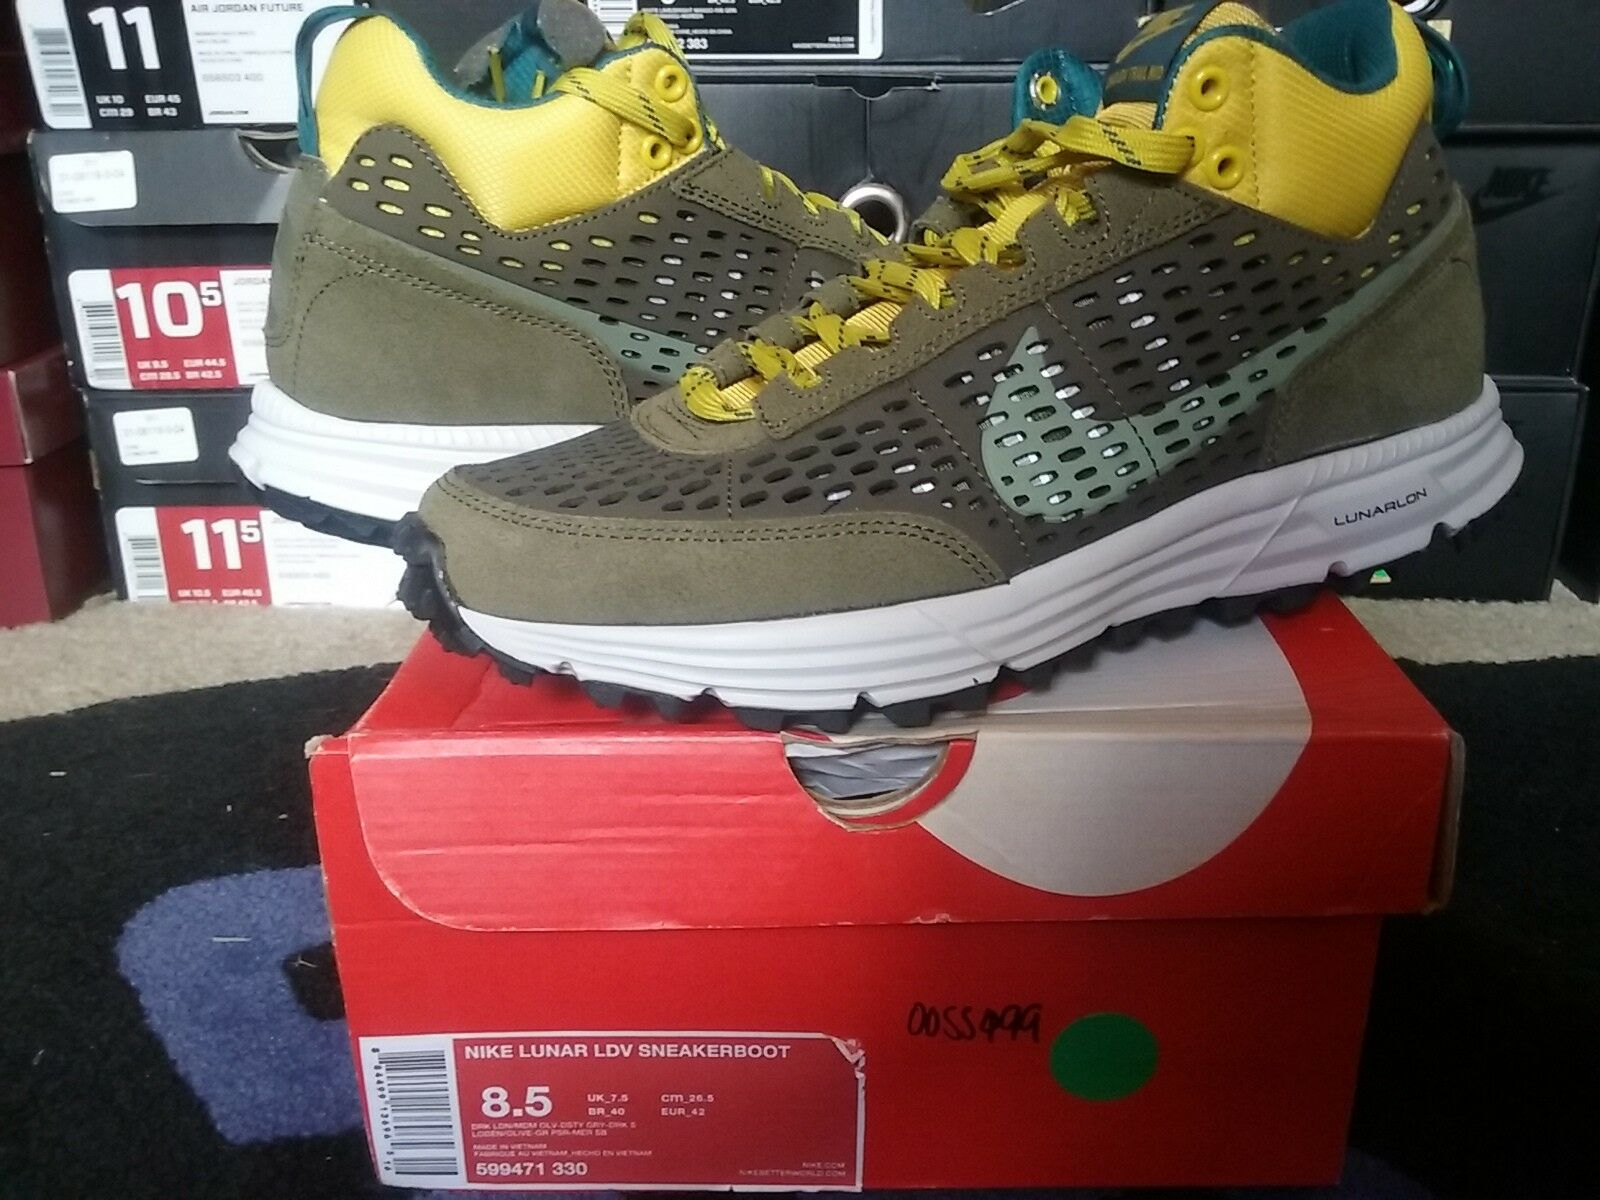 Nike Air Lunar LDV Sneakerboot ACG Dark Loden Medium Olive Grey Green 599471 330